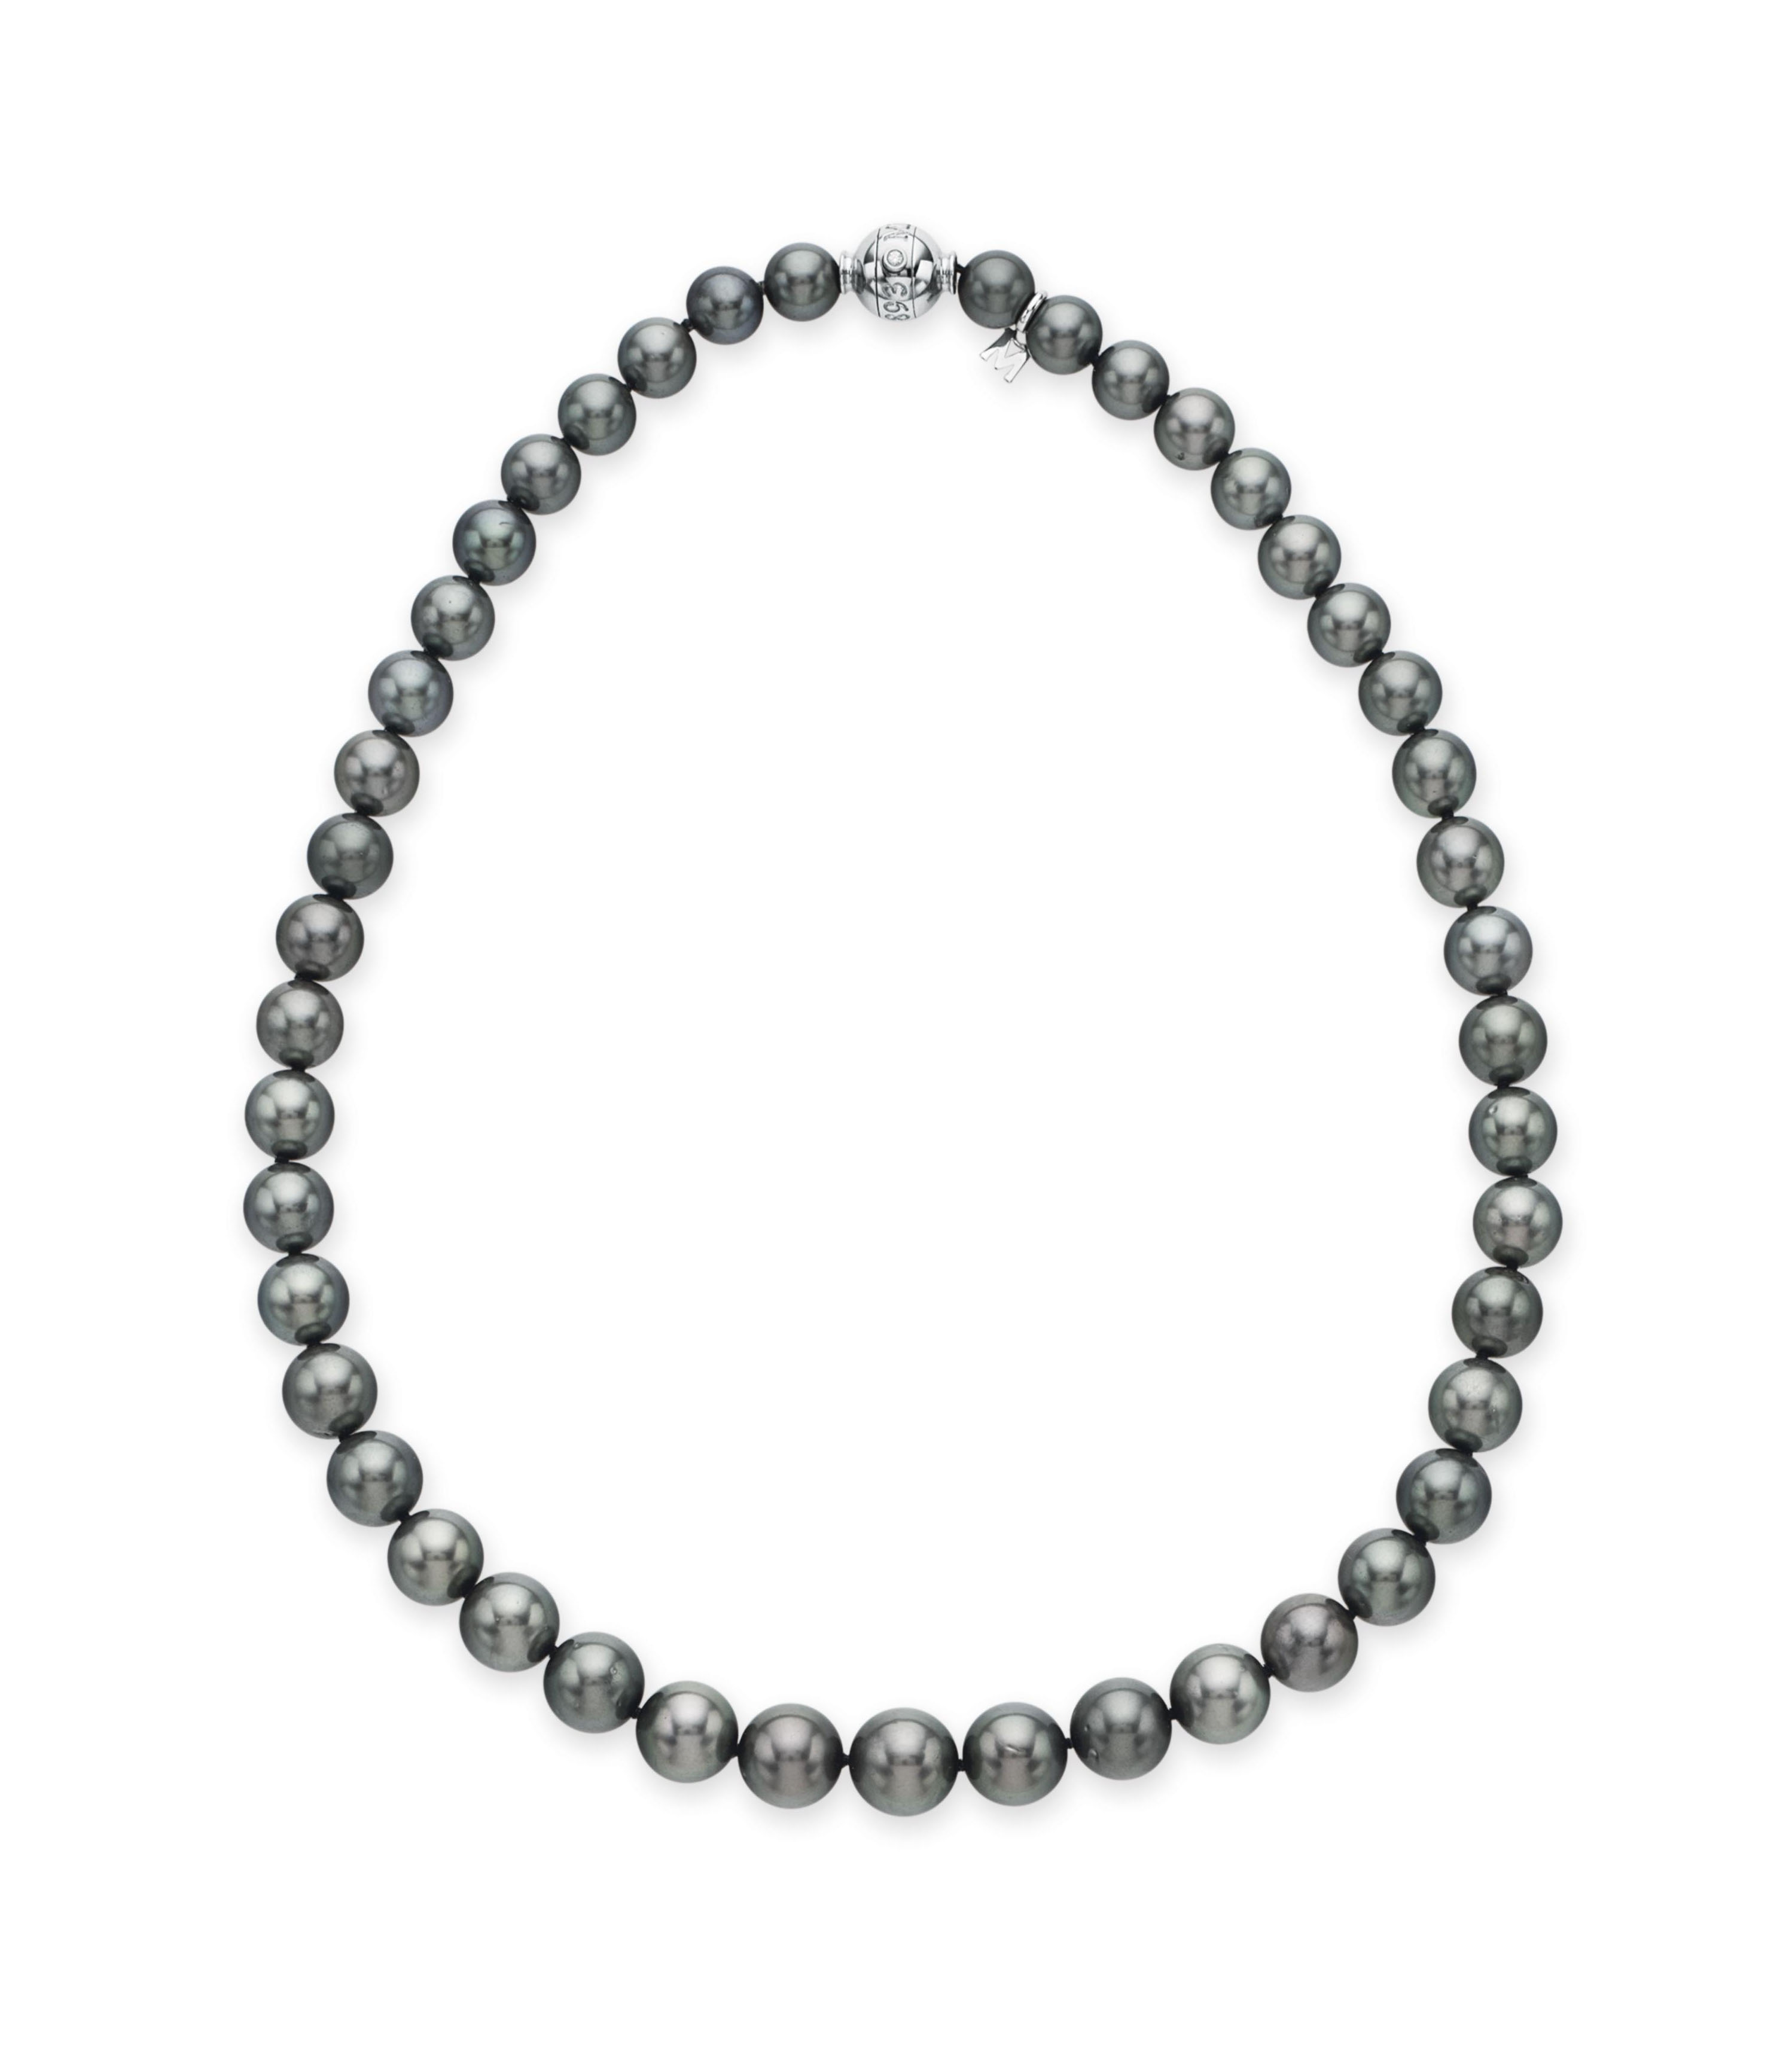 Mikimoto Pearls Necklace: A SINGLE-STRAND GRAY CULTURED PEARL NECKLACE, BY MIKIMOTO